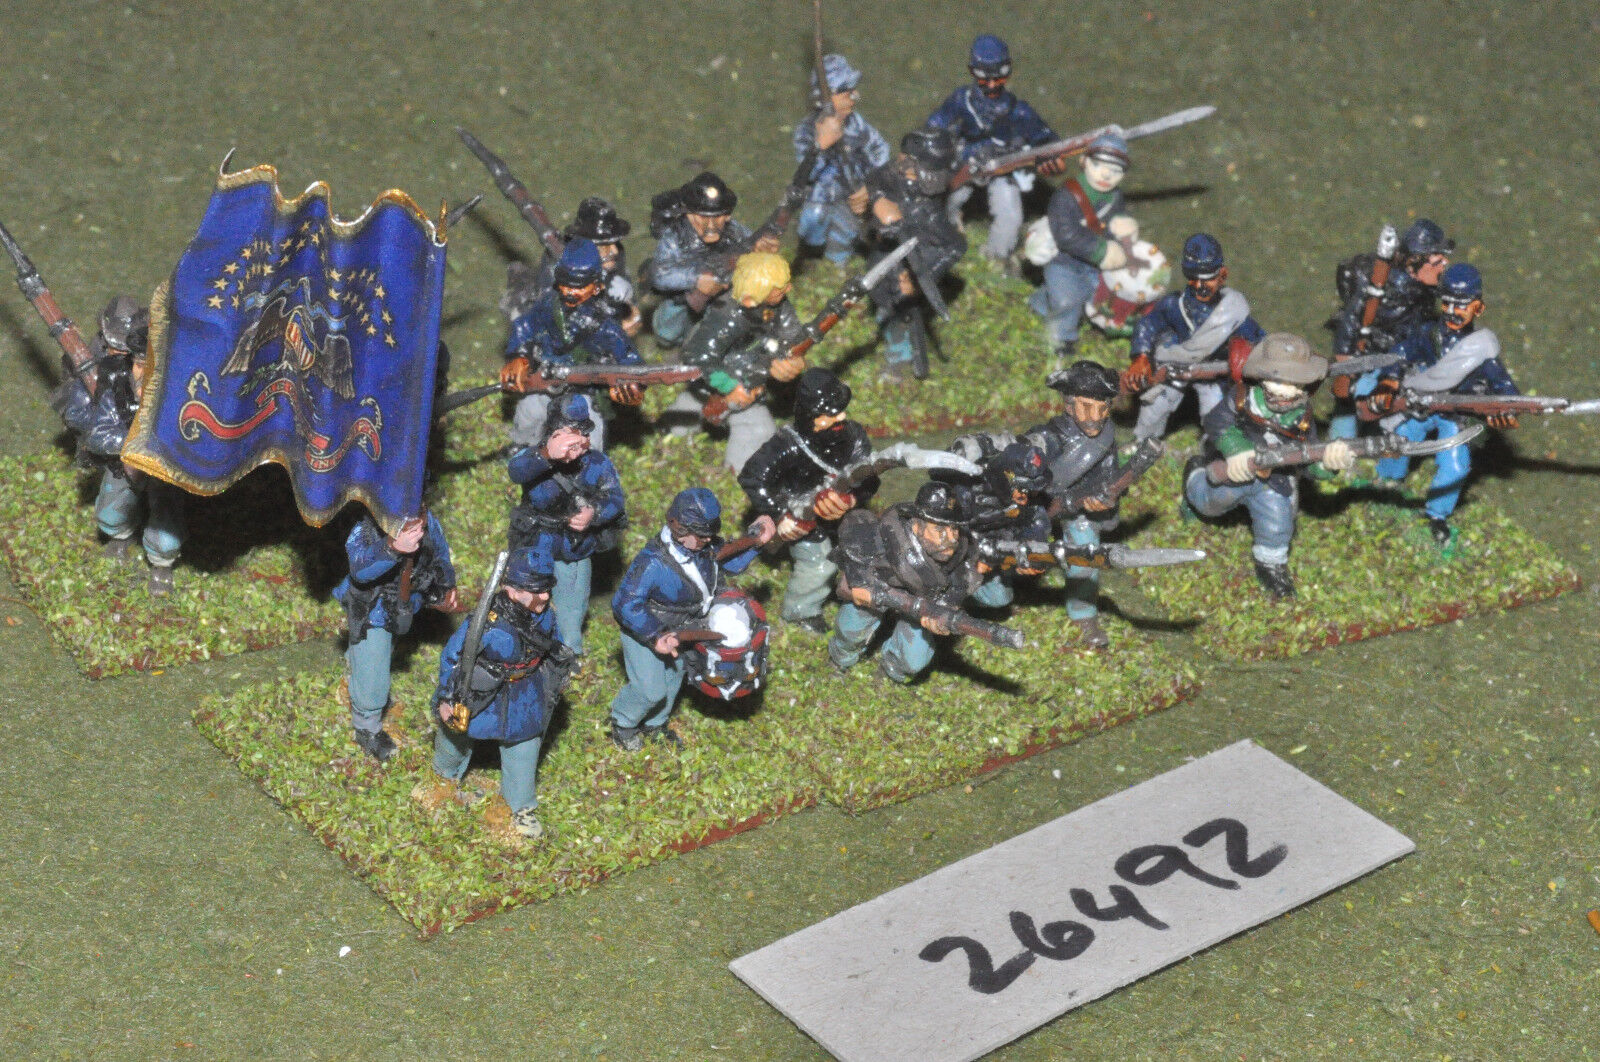 25mm ACW   union - regt. 24 figures - inf (26492)